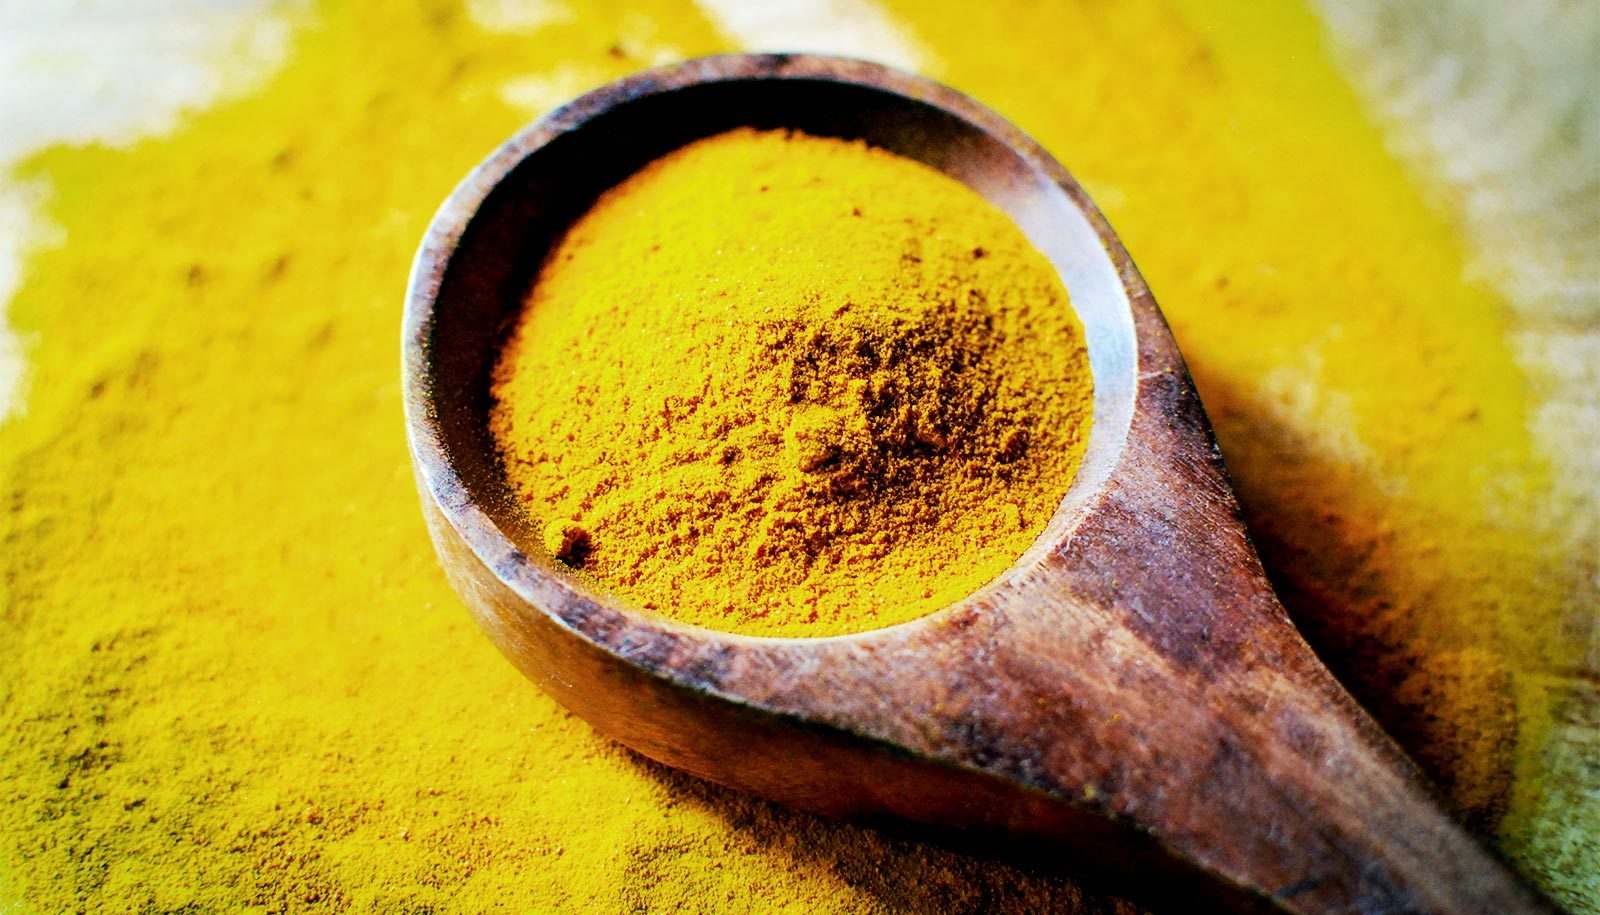 There's lead in turmeric from one of the world's biggest growers